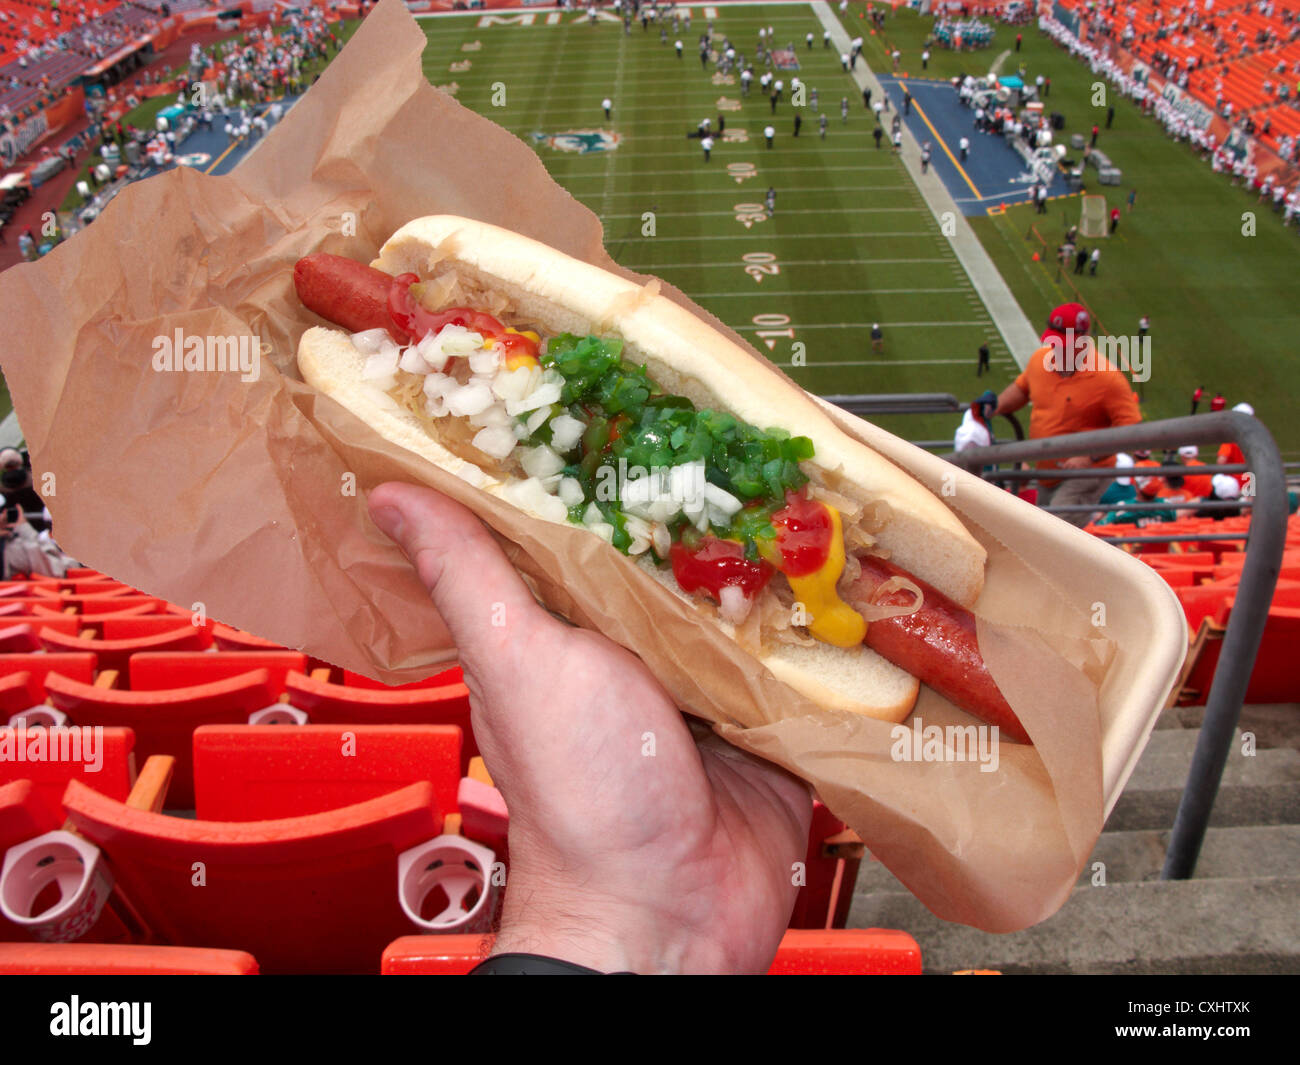 Hot Dog dentro de sun life stadium de Miami, Florida USA Imagen De Stock